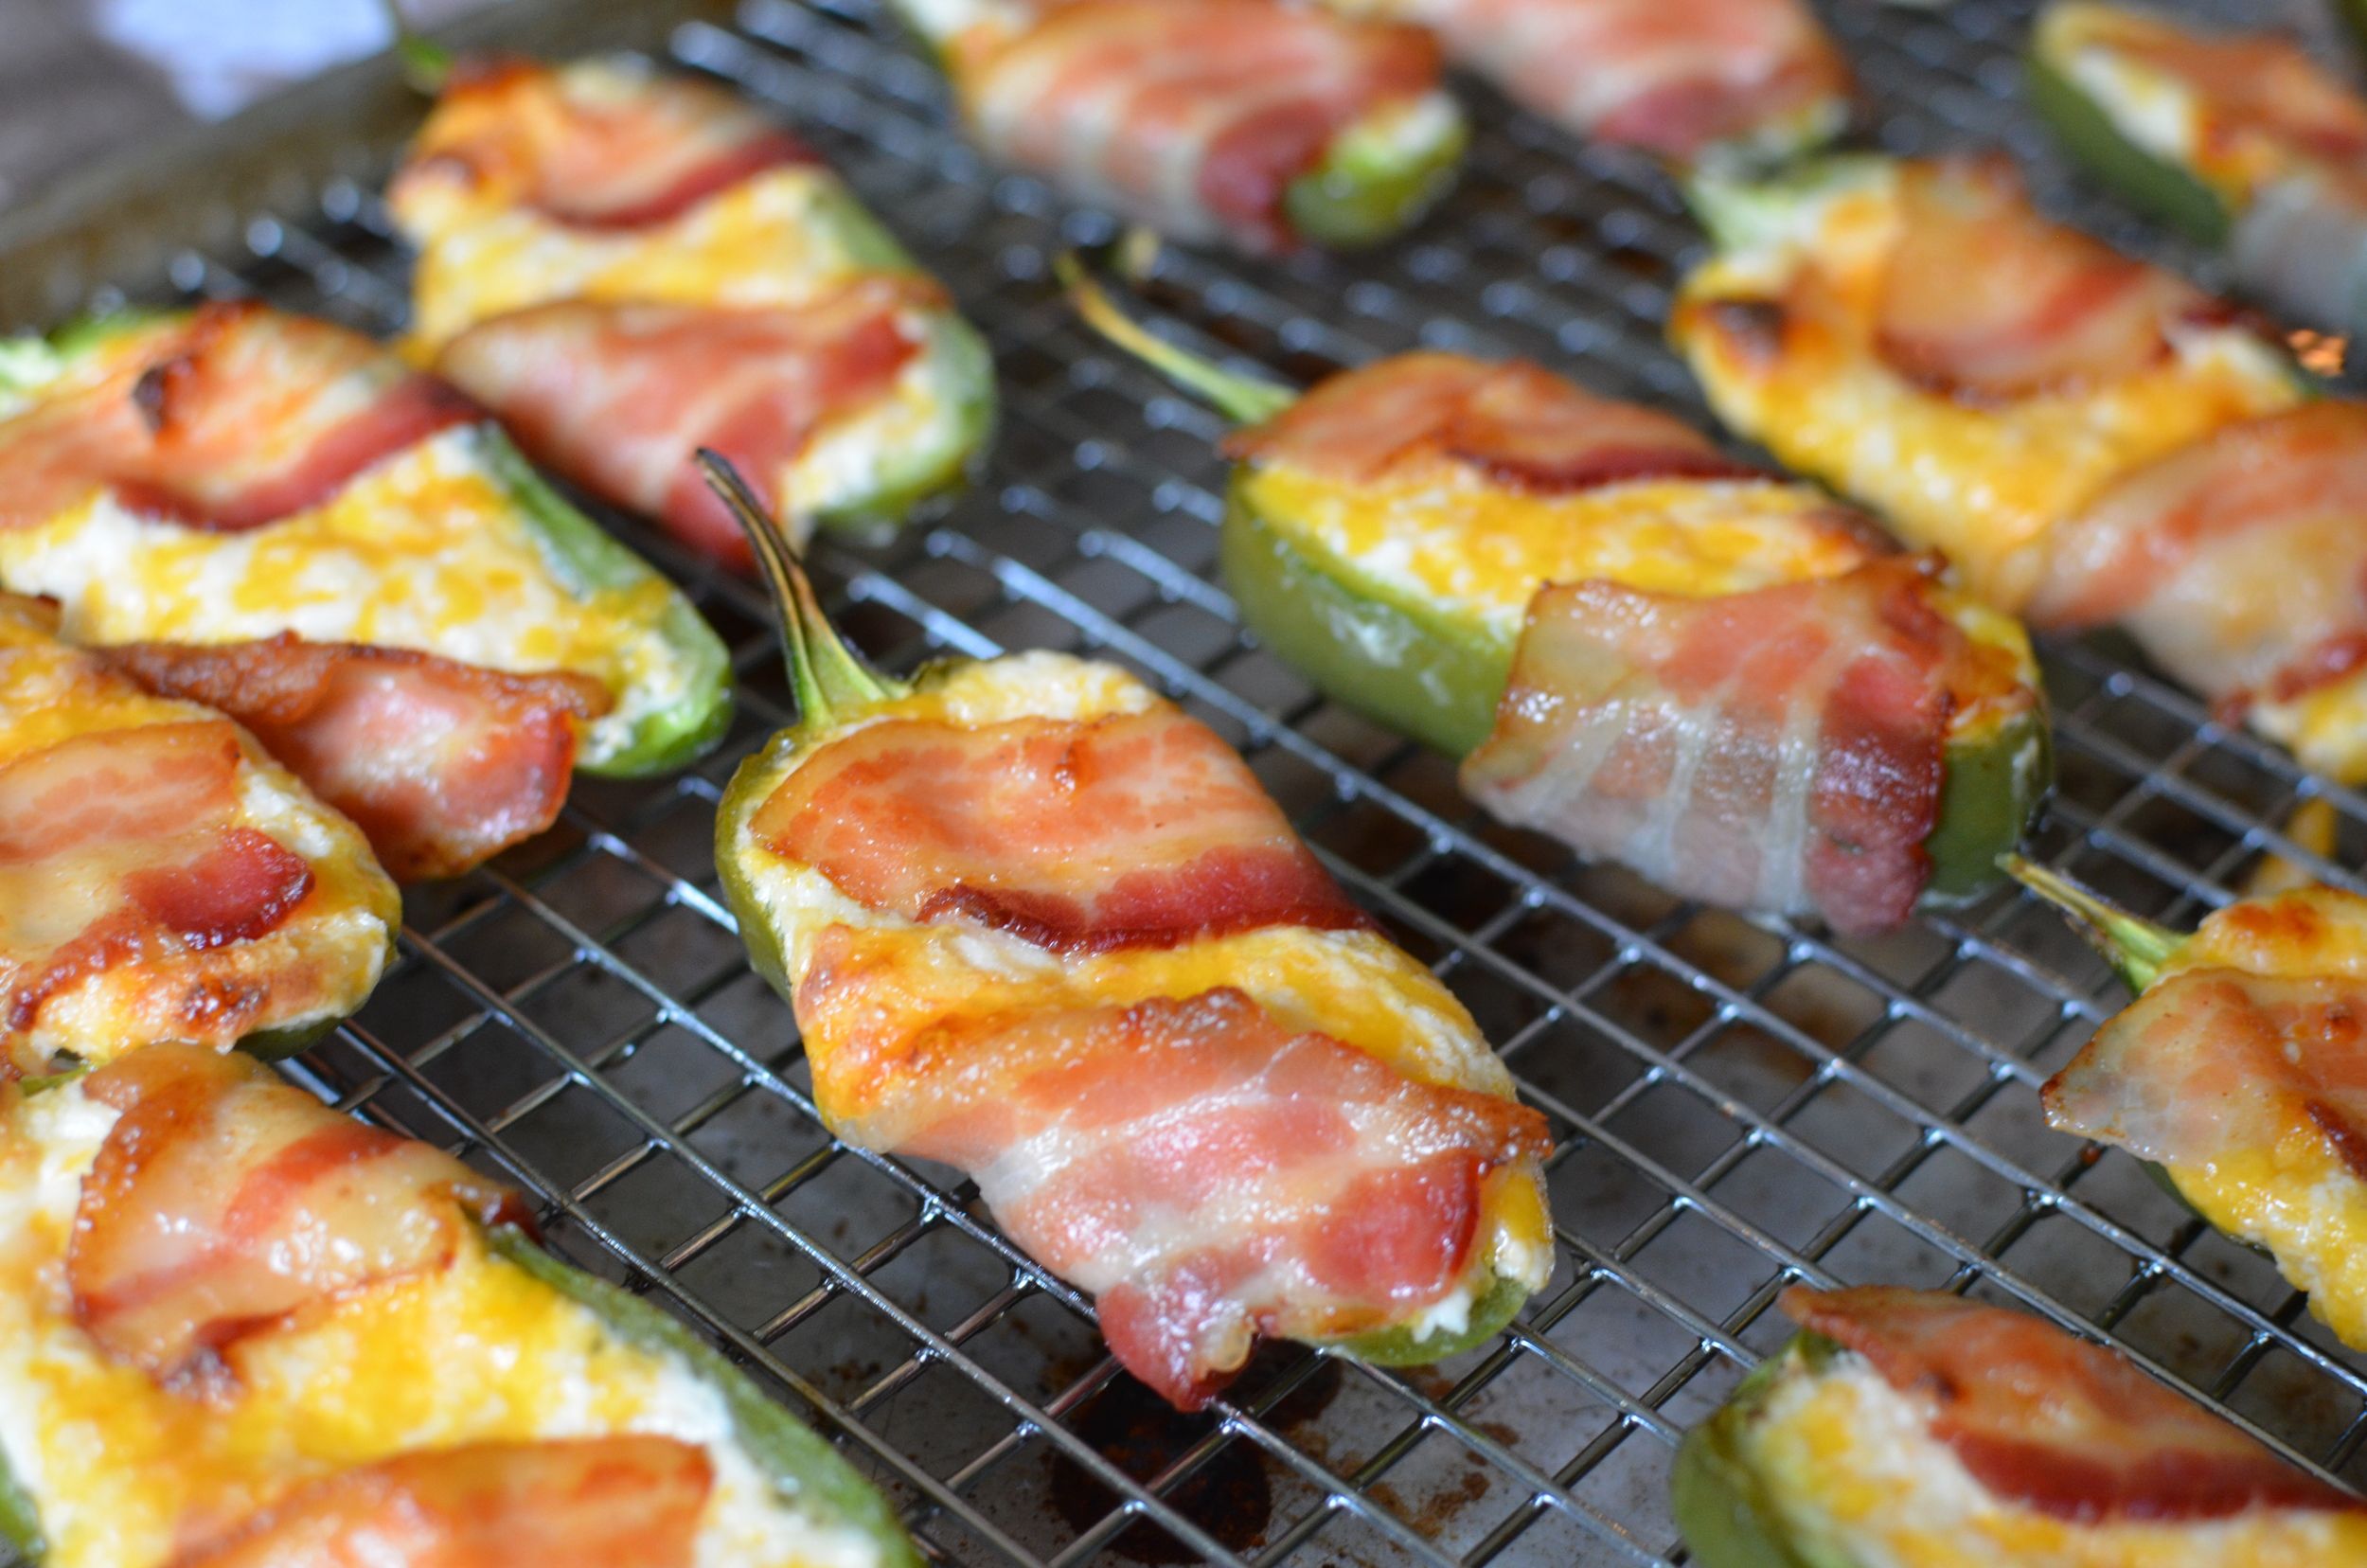 Bacon Wrapped Jalapeno Poppers - ButterYum. fantastic keto snack recipe. keto game day recipe. how to make keto friendly snacks for the big game. keto finger food recipe. keto jalapeño poppers recipe. keto friendly half-time snacks.